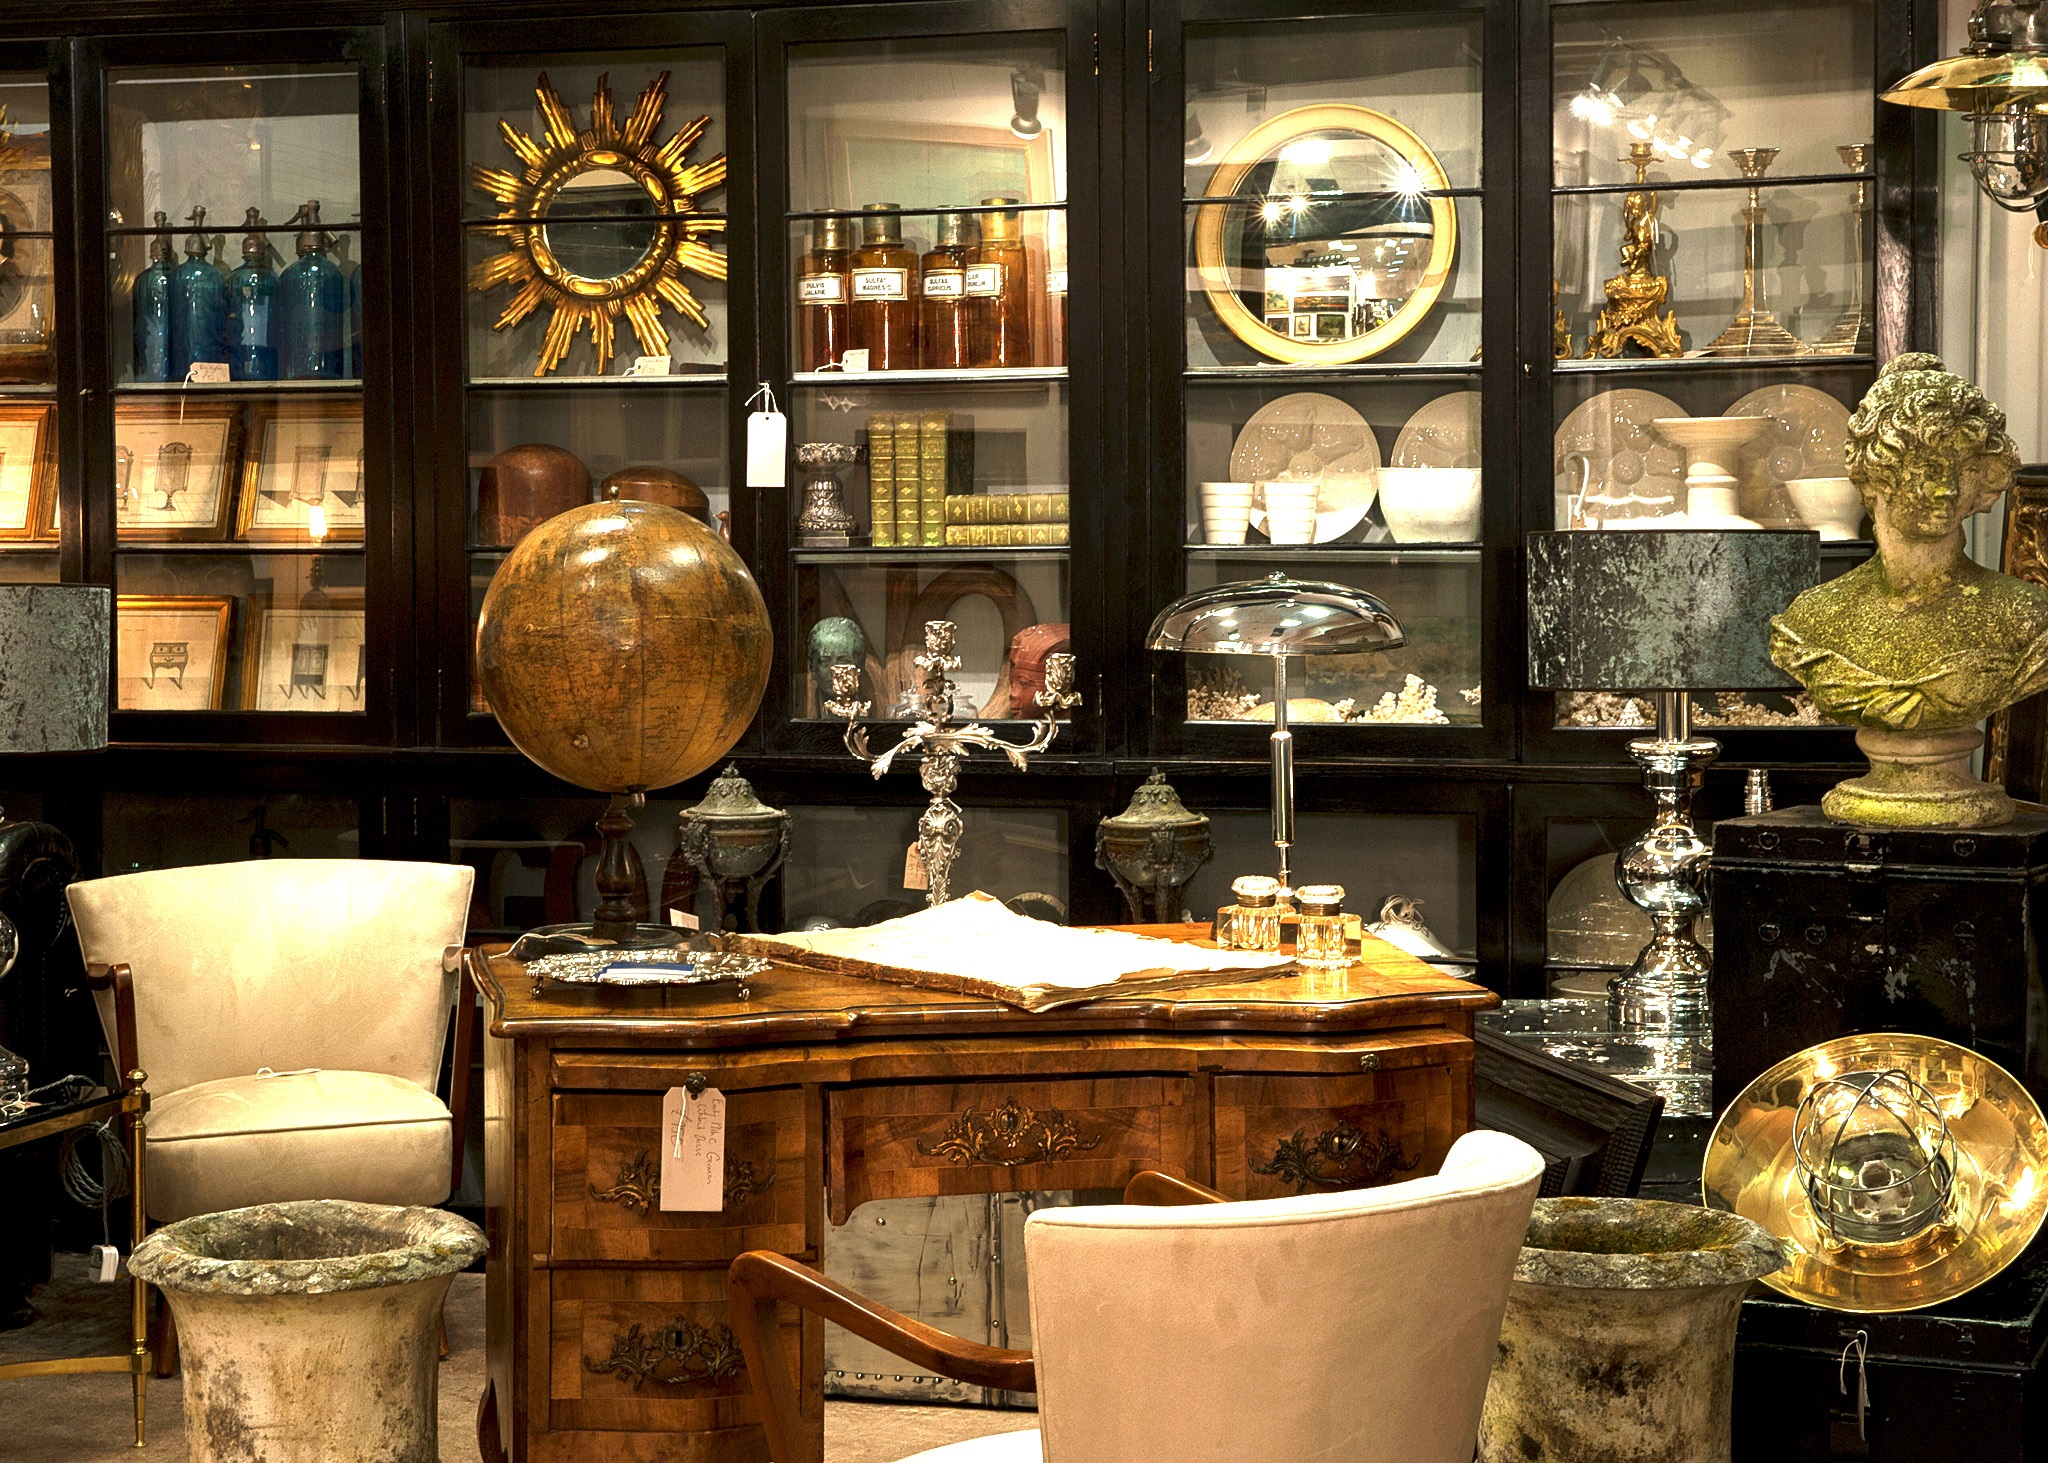 William Morris Antiques Bath Decorative Antiques Fair